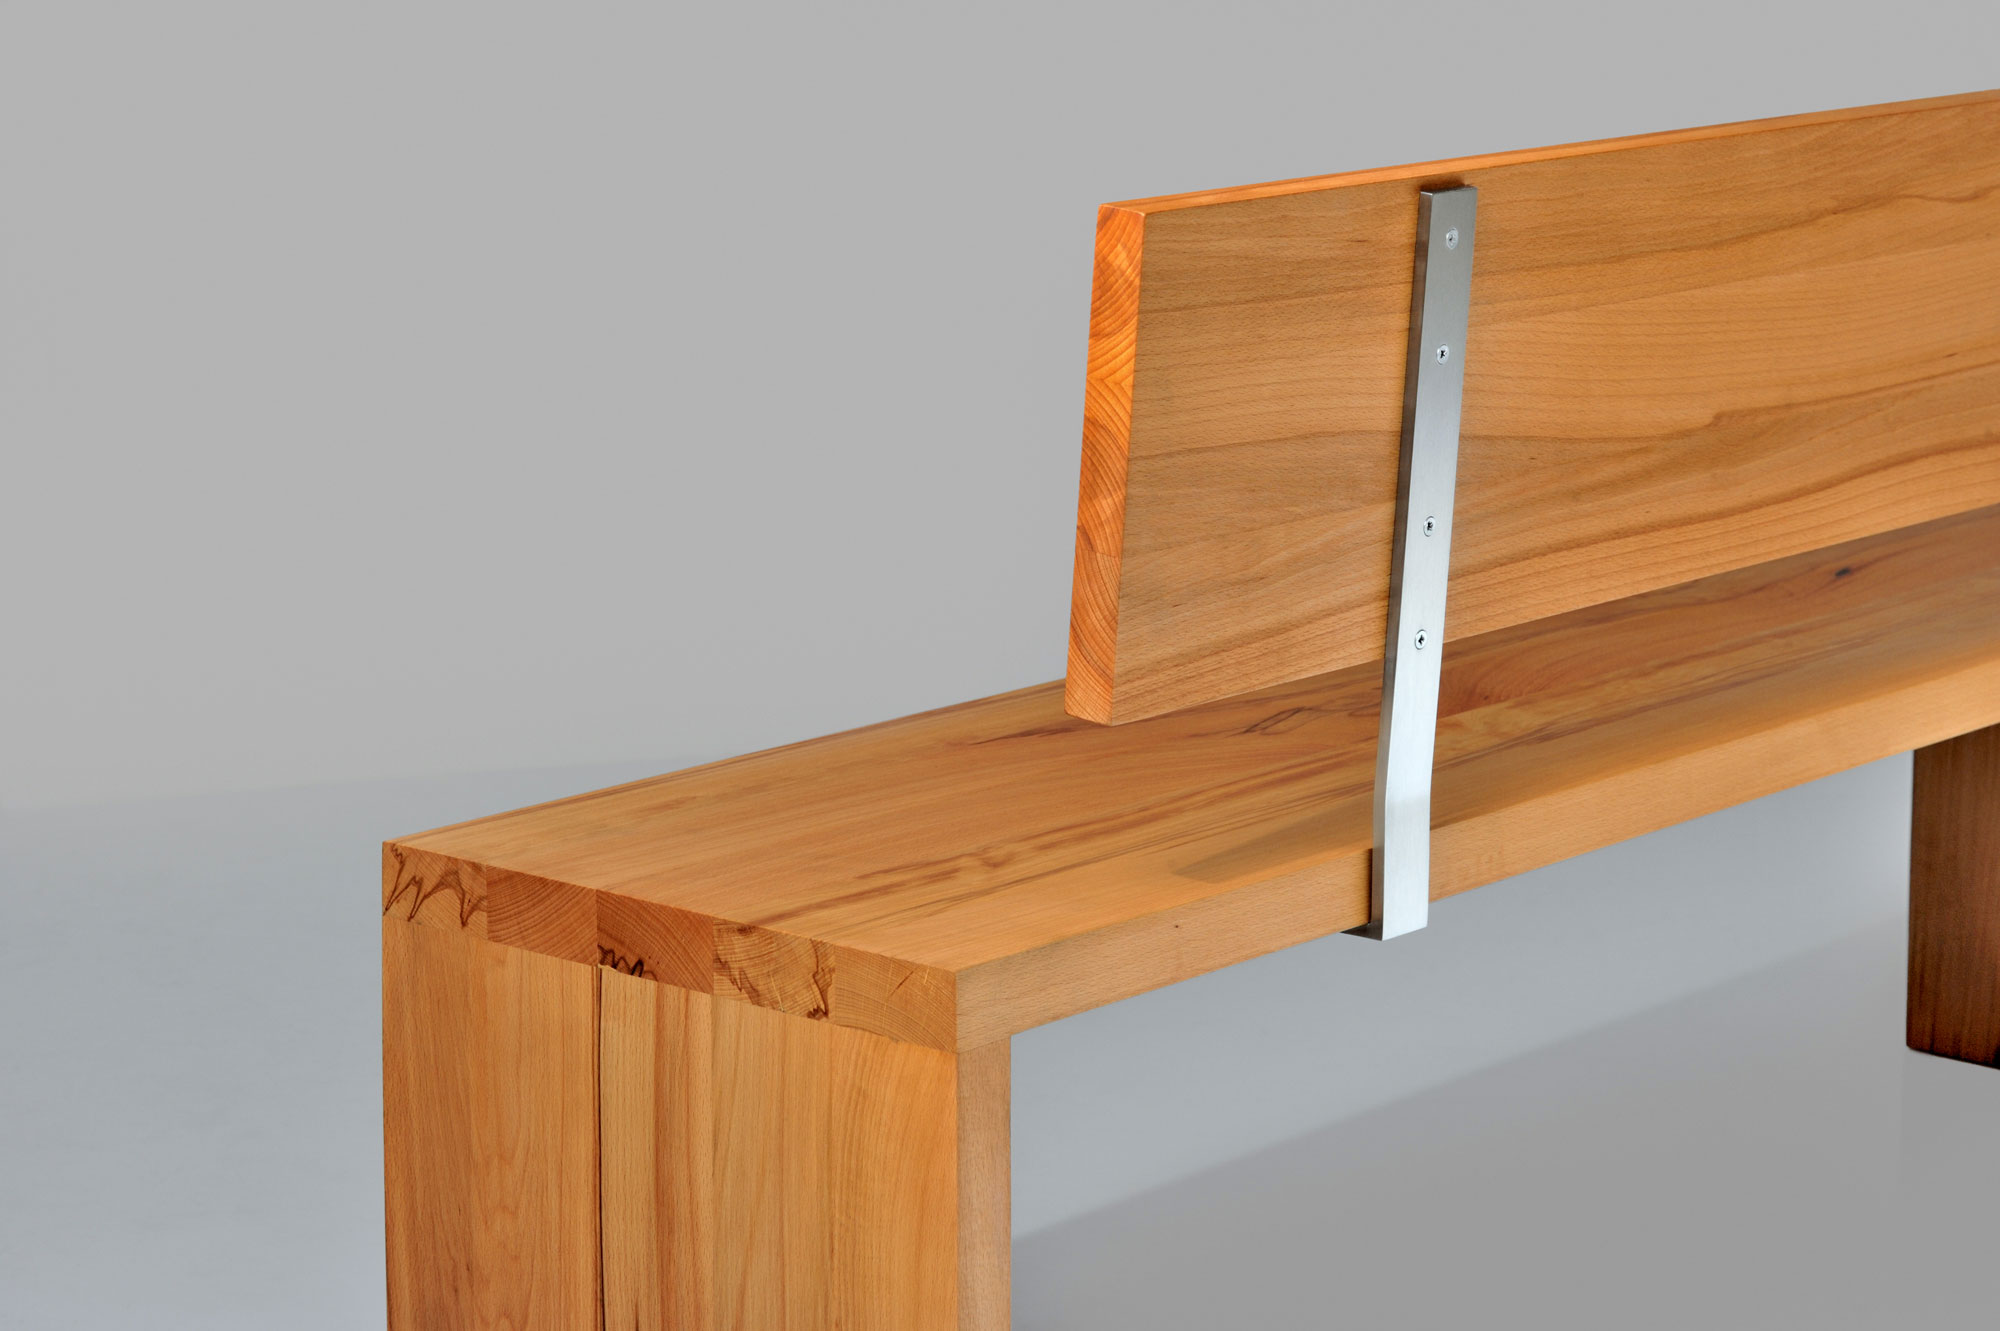 Custom Made Bench MENA 4 nef0380 custom made in solid wood by vitamin design